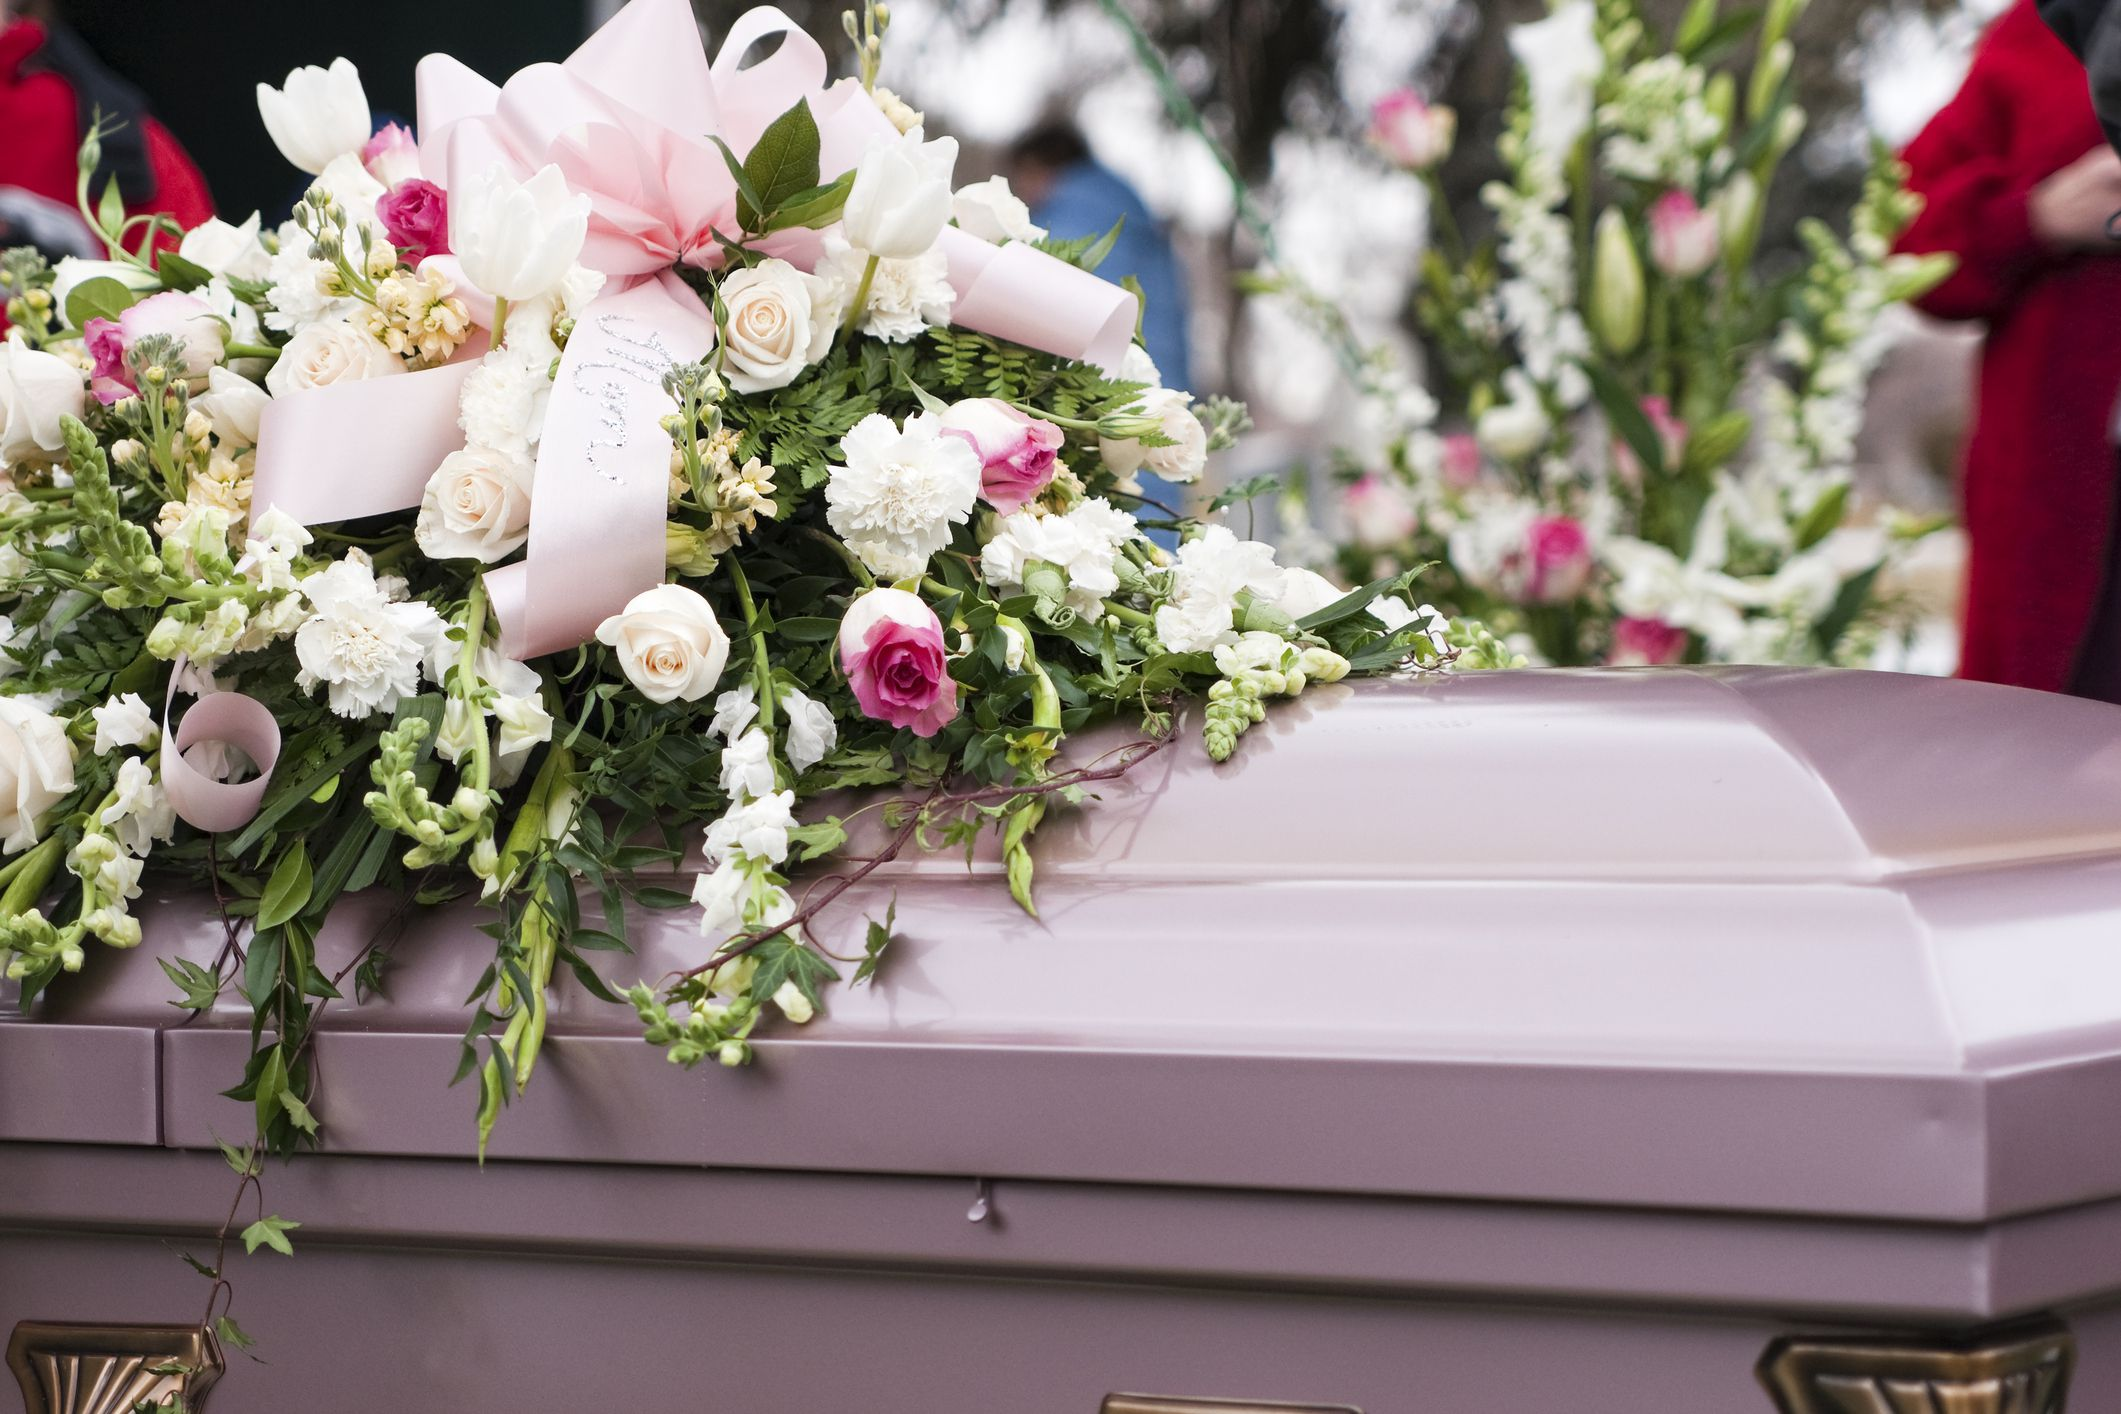 Should you send flowers to a funeral izmirmasajfo Image collections